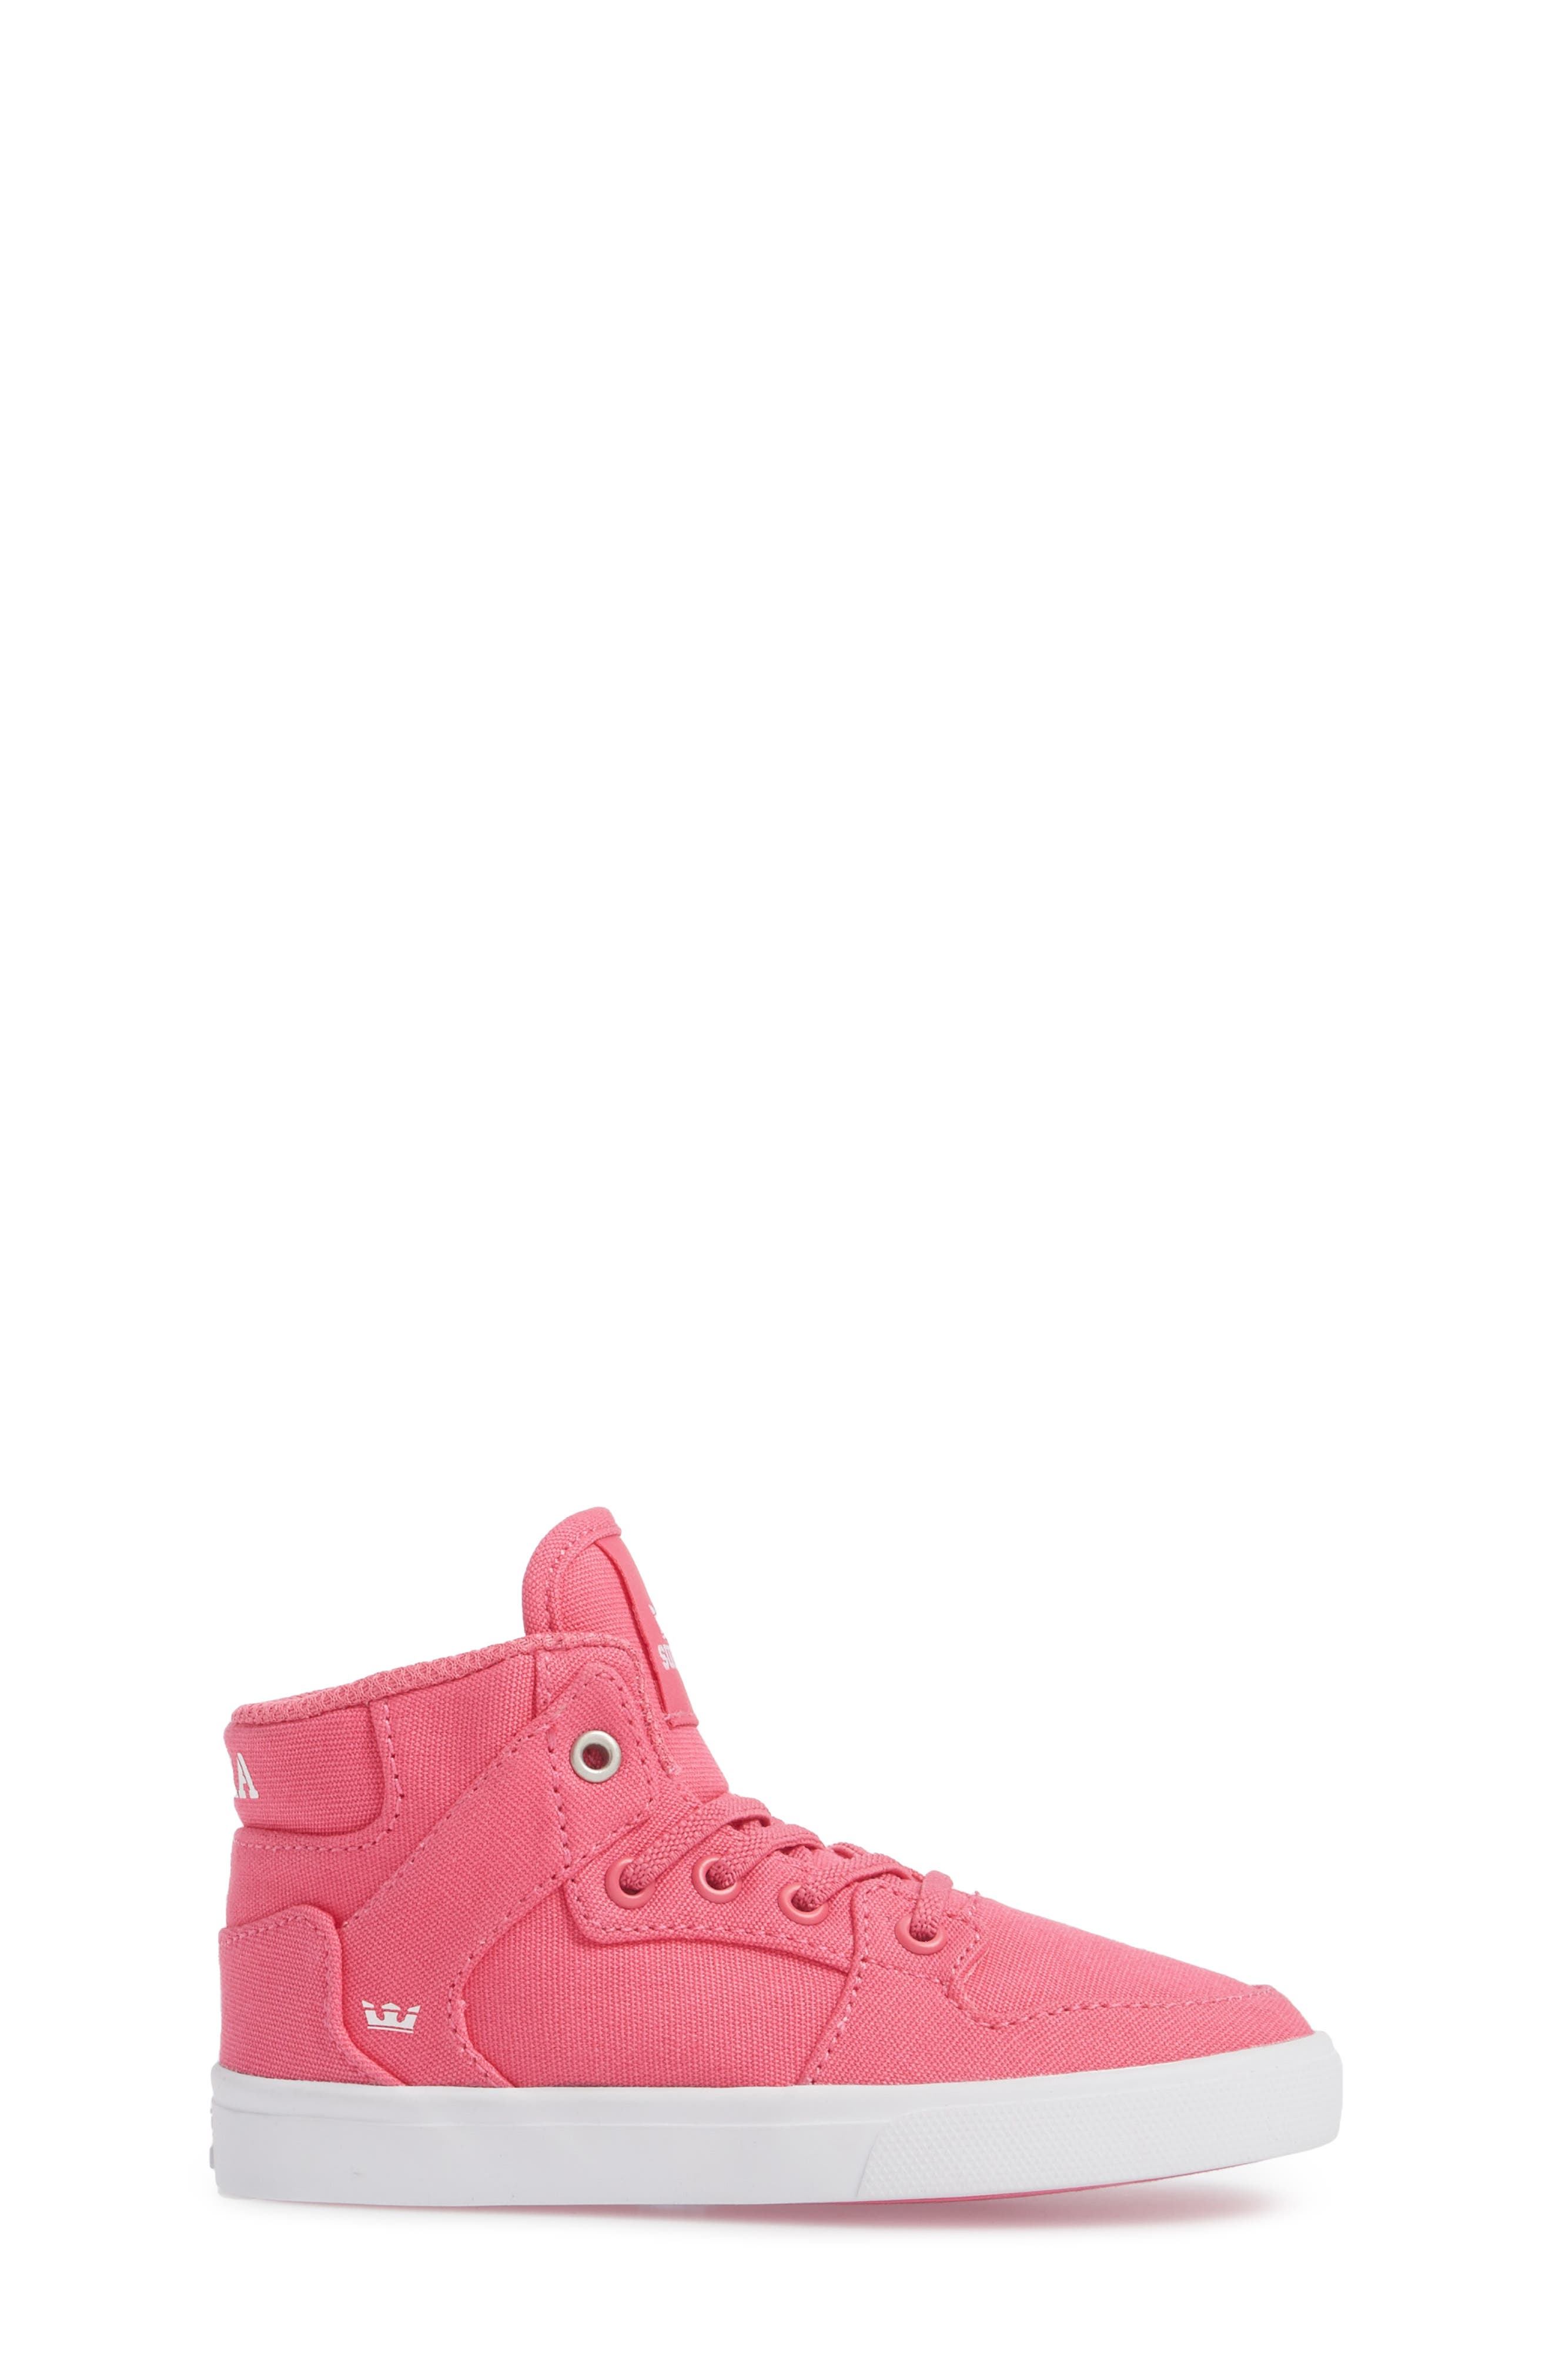 'Vaider' High Top Sneaker,                             Alternate thumbnail 3, color,                             Pink